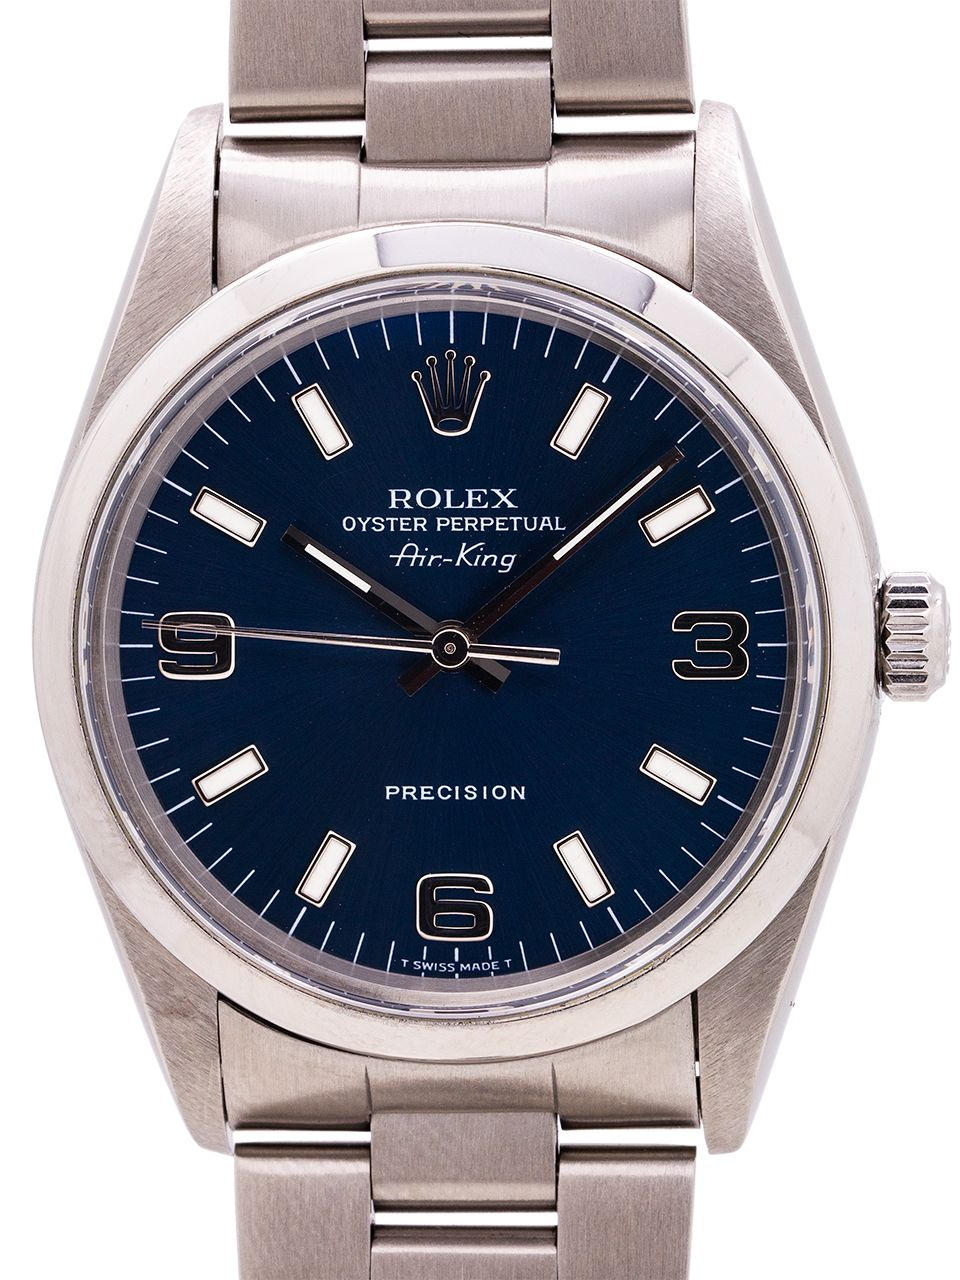 Rolex Stainless Steel Oyster Perpetual Blue Dial AirKing